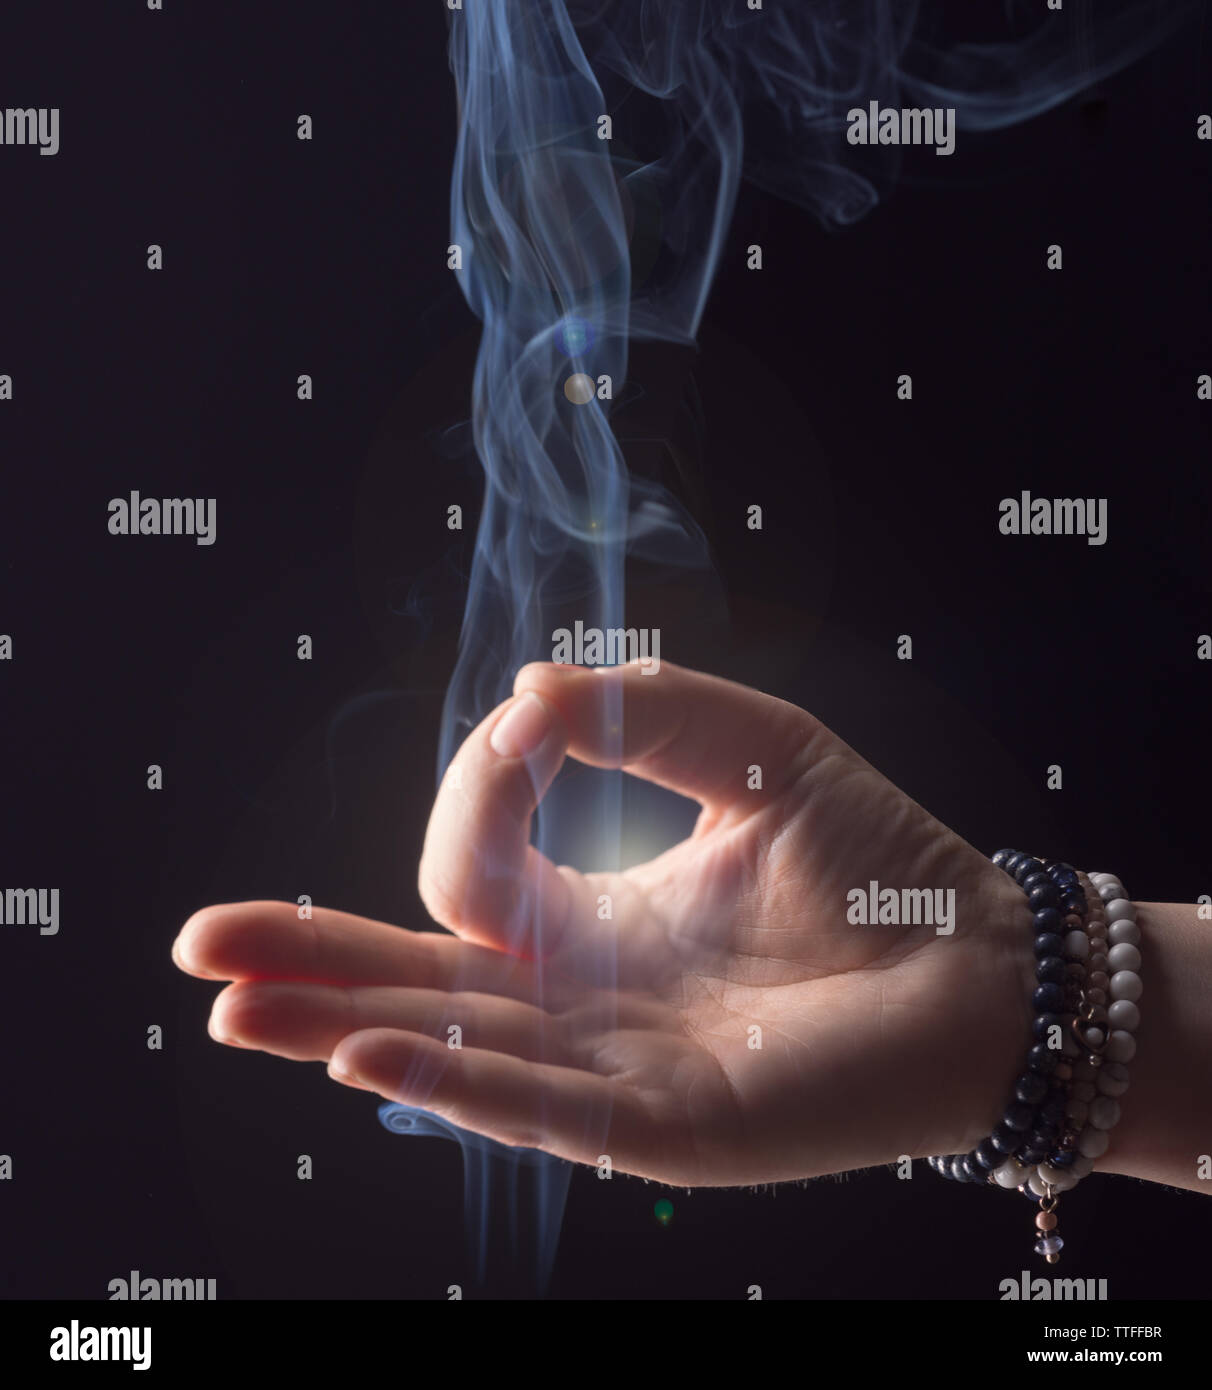 Hand woman enlightened while meditating Stock Photo